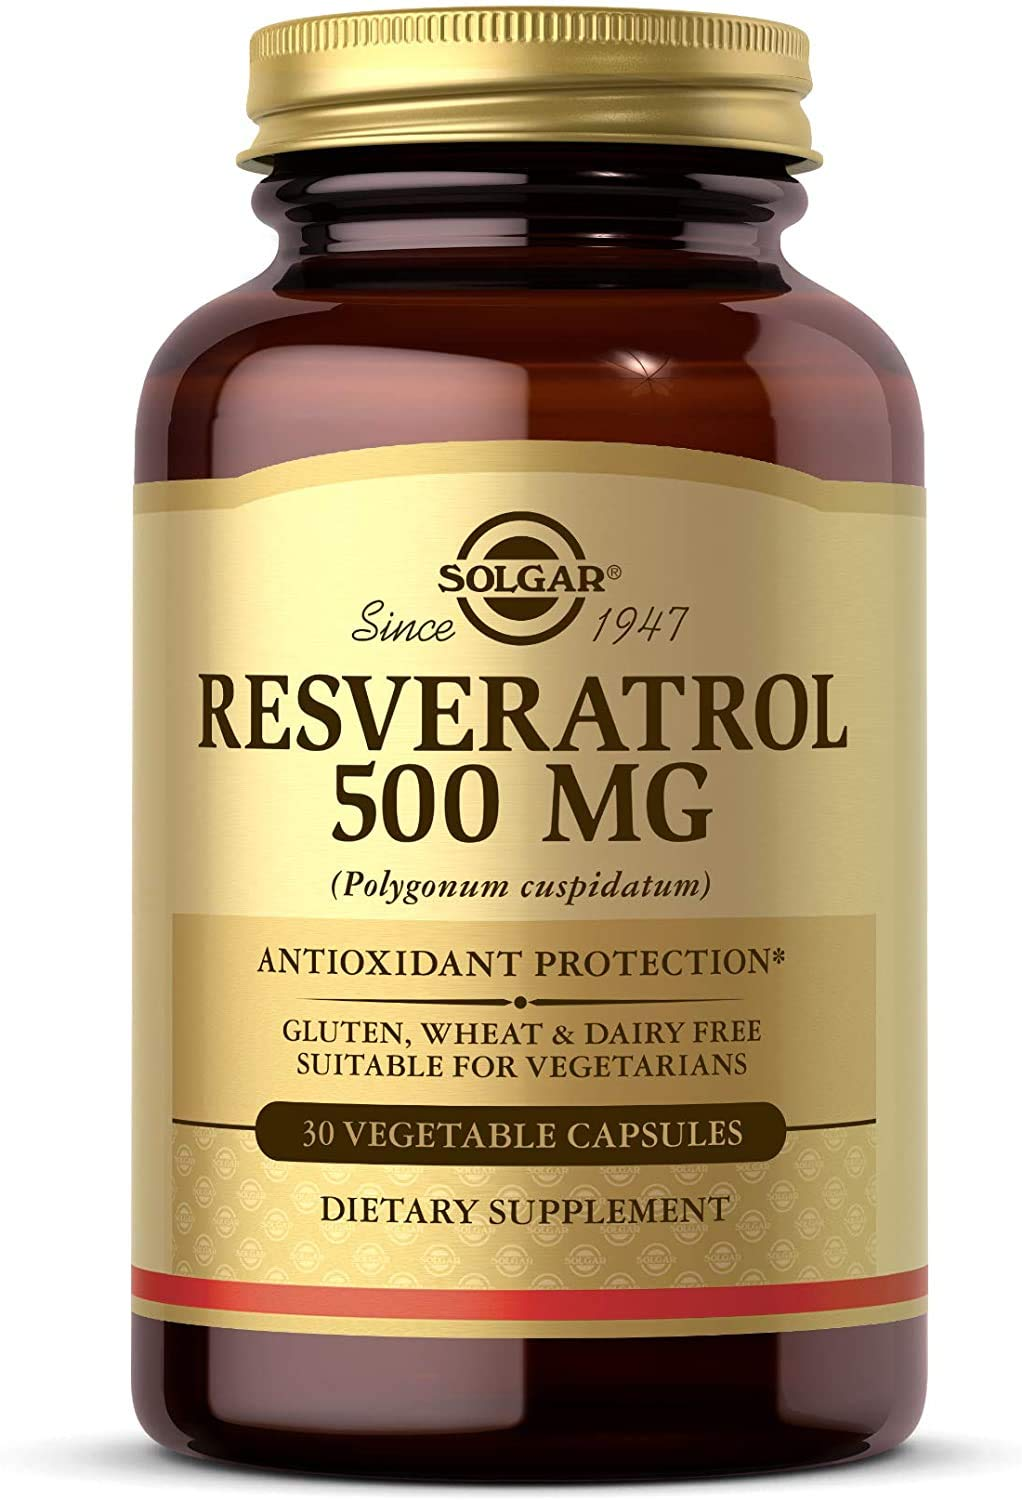 Solgar Resveratrol 500 mg, 30 Vegetable Capsules - Antioxidant Protection - Gluten Free, Dairy Free - 30 Servings